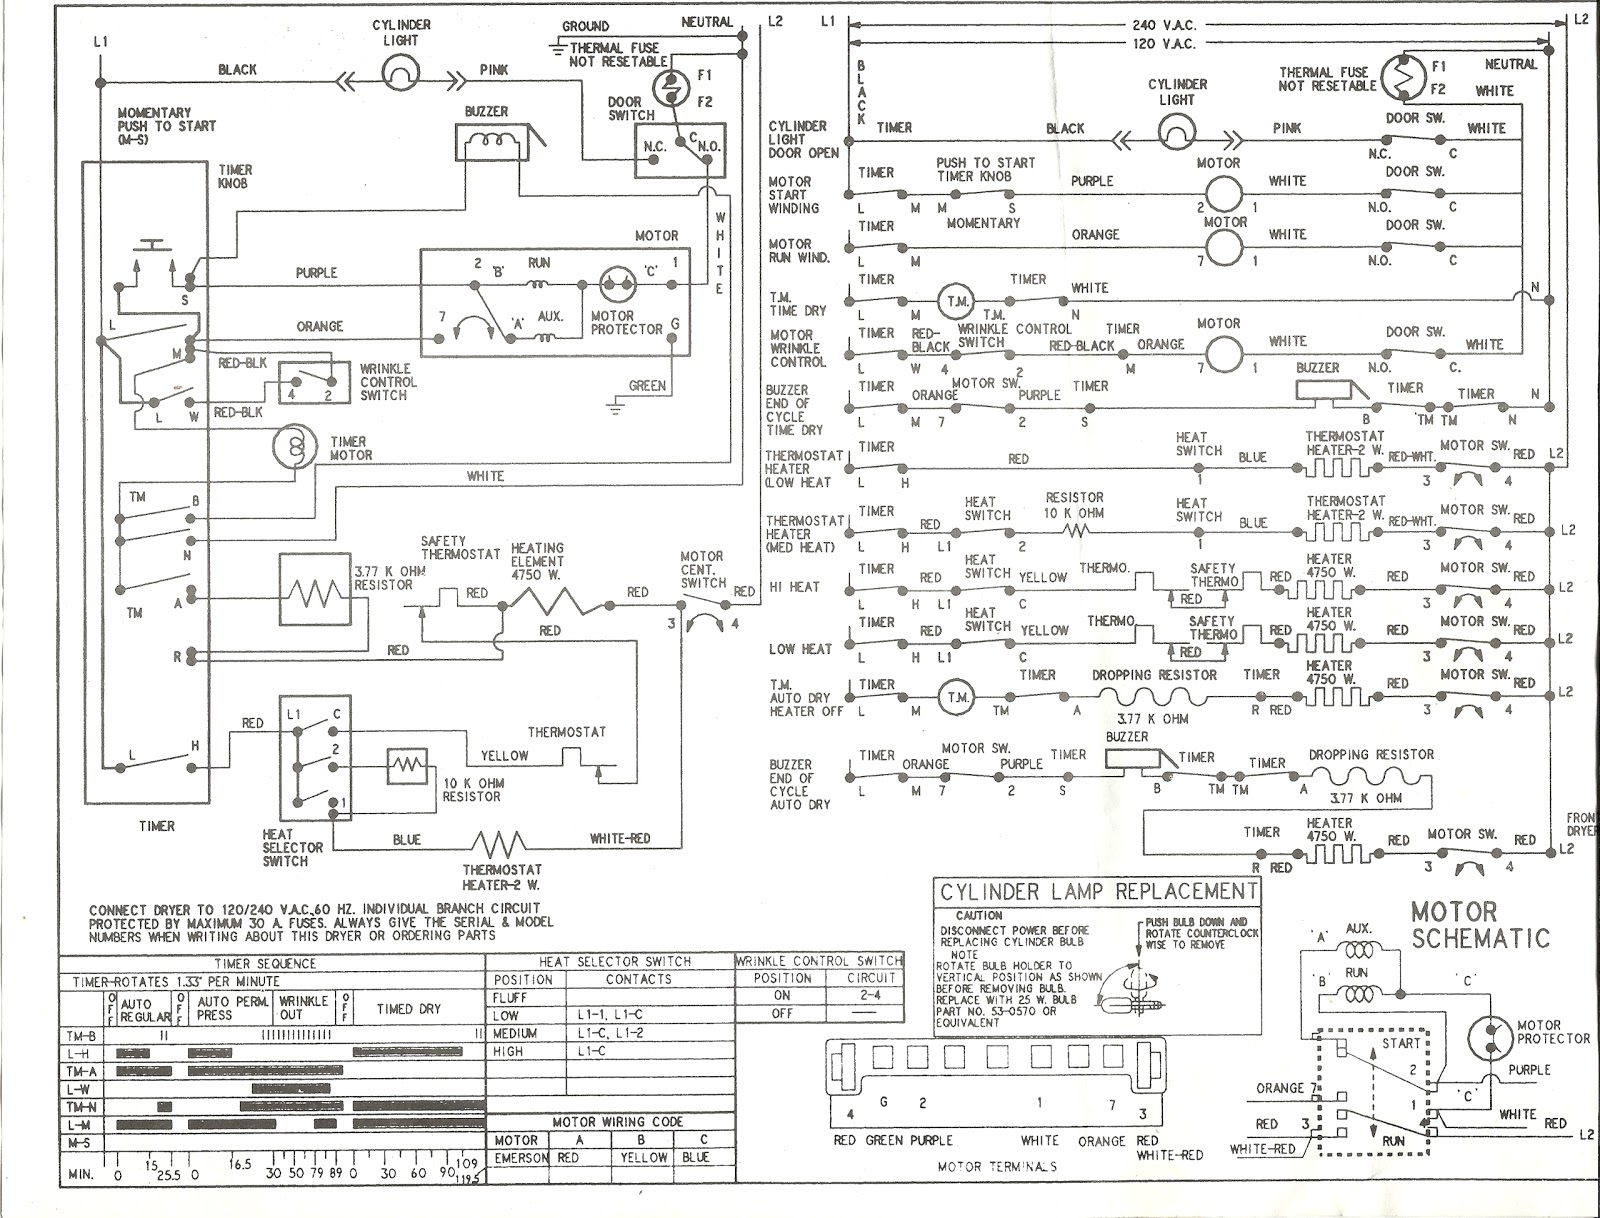 kenmore washer wiring diagram on wiring diagram parts wiring for kenmore 80 series washer parts diagram kenmore washer wiring diagram kenmore wiring diagrams collection whirlpool washing machine wiring diagram at webbmarketing.co